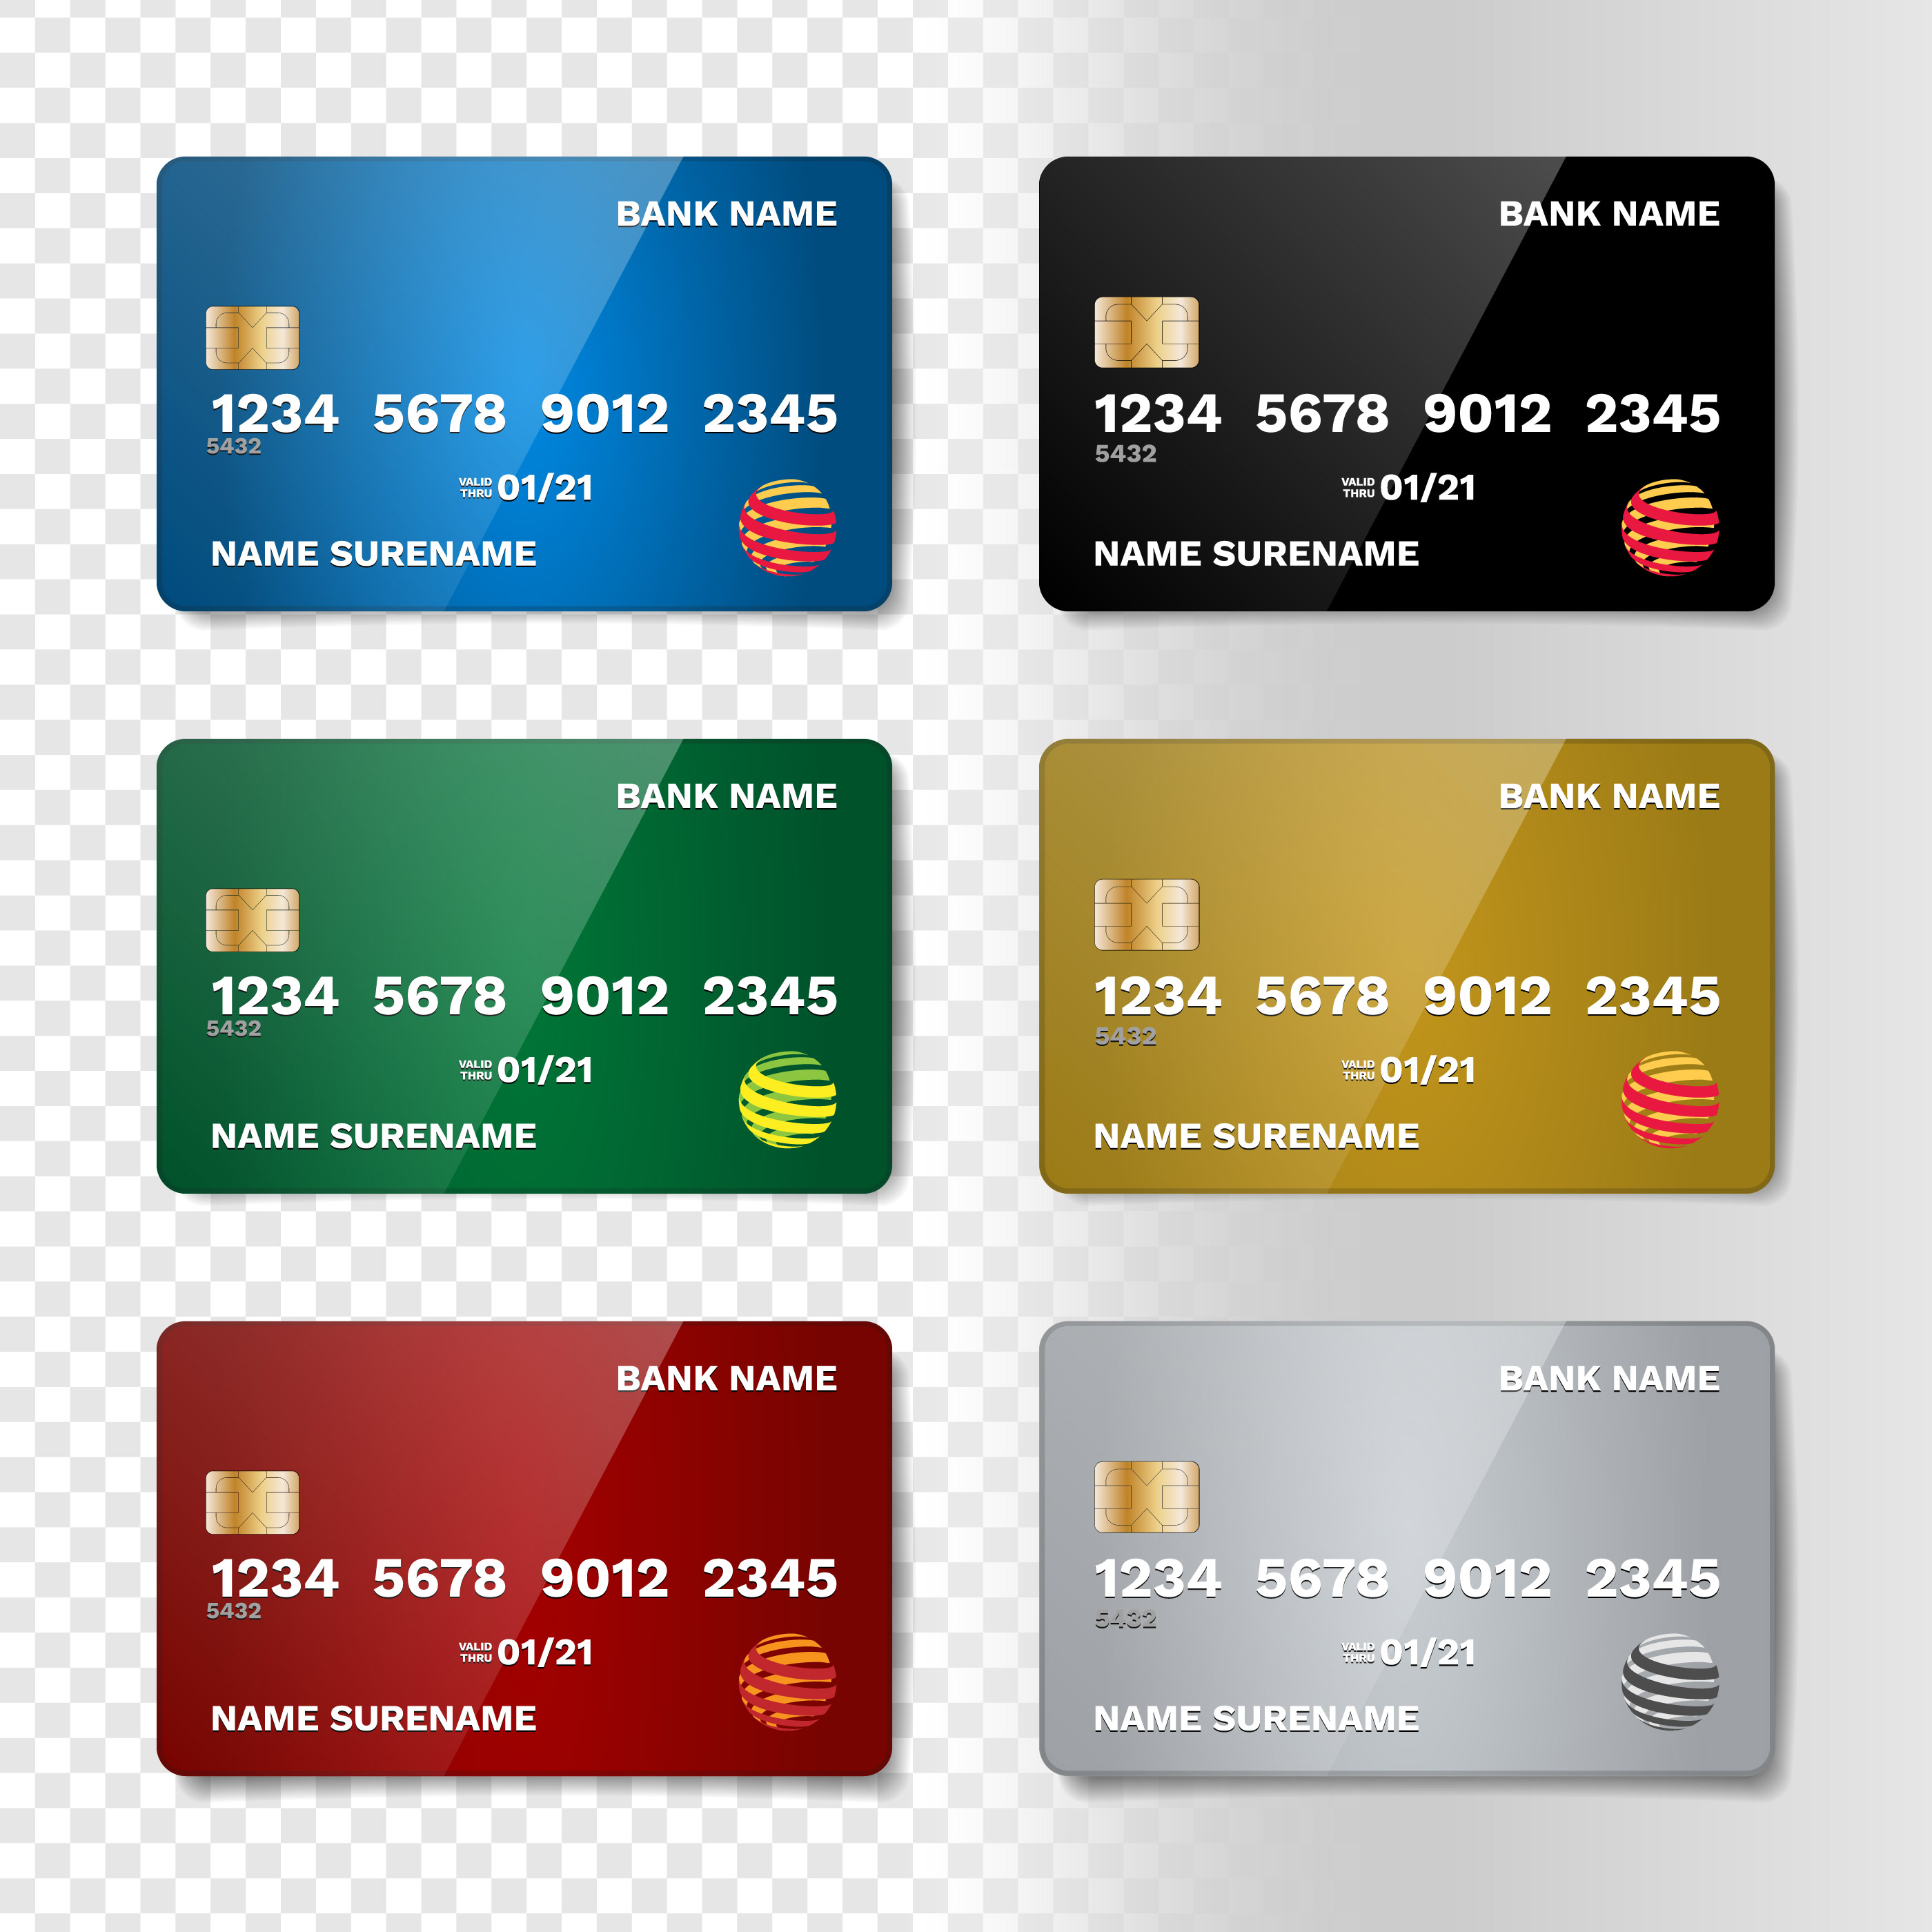 Credit Card Free Vector Art 49159 Free Downloads